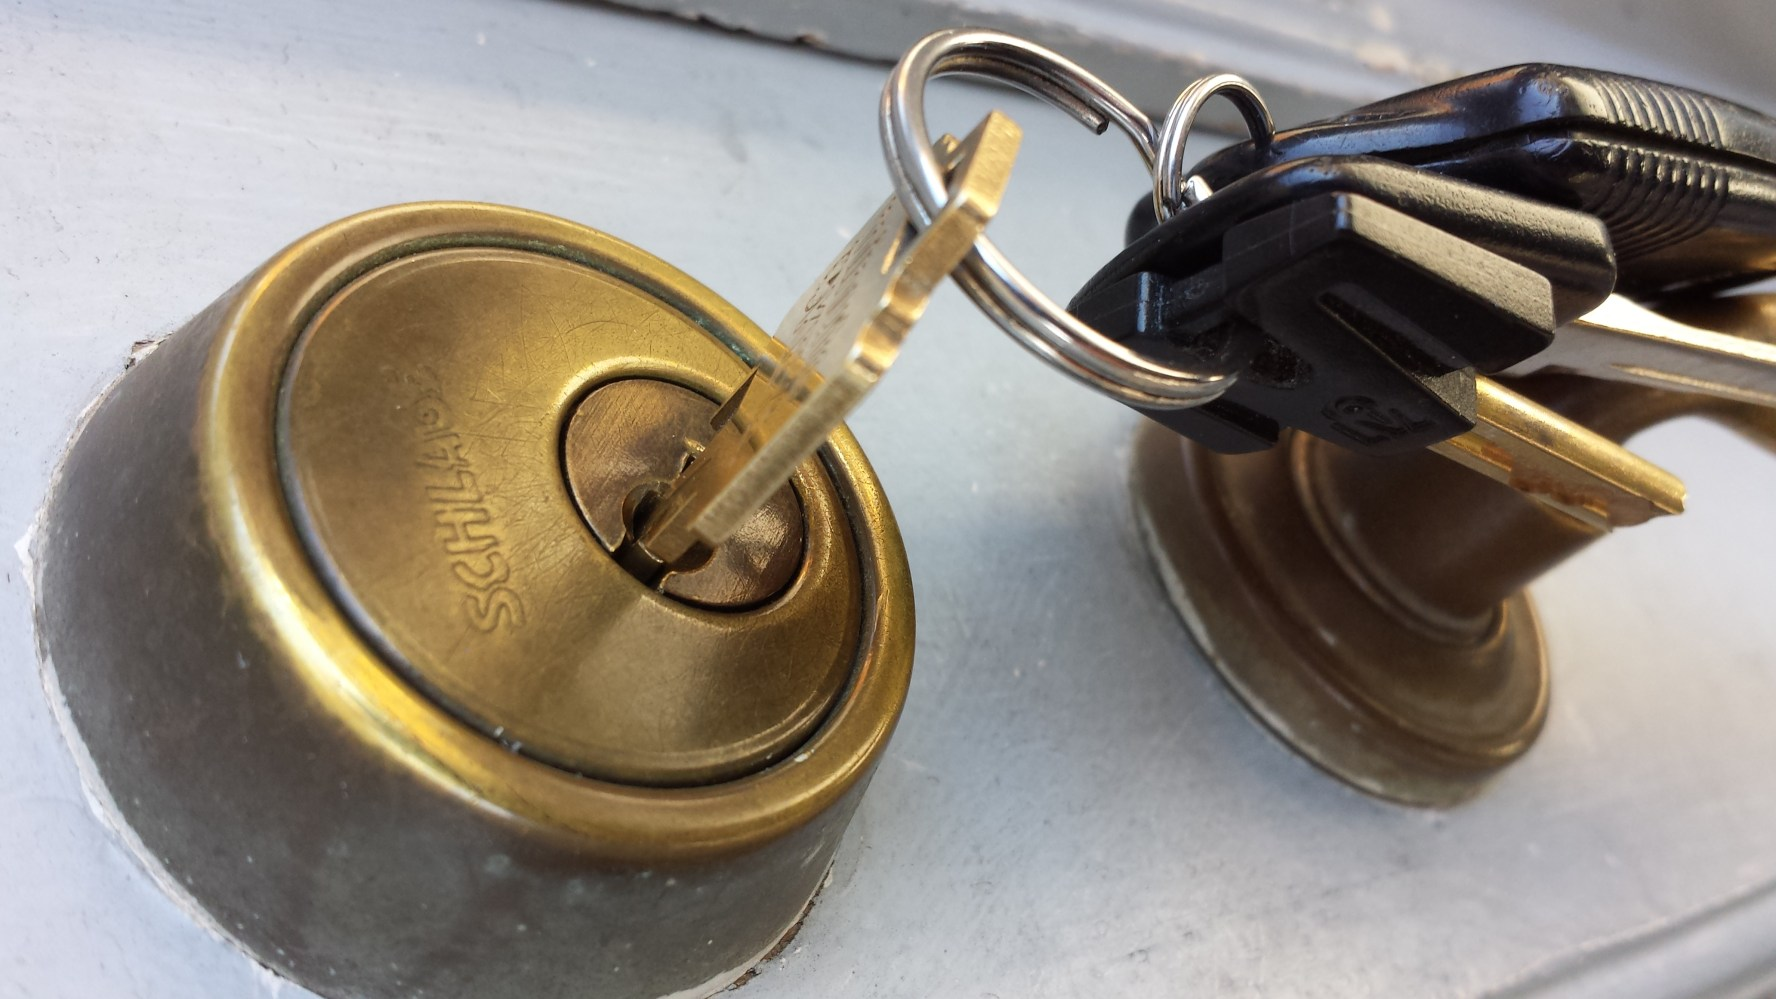 A picture of a lock and keys symbolizing privacy.